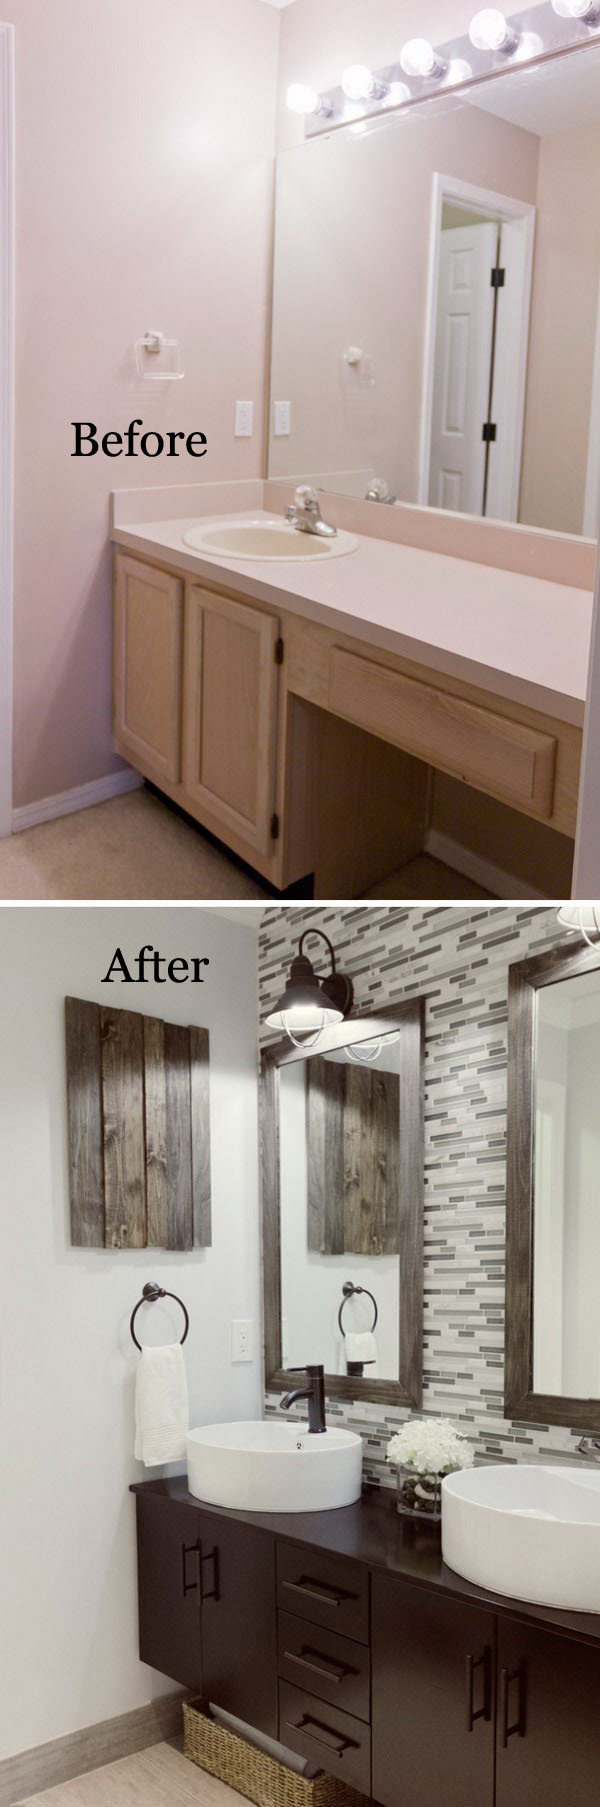 Before and after 20 awesome bathroom makeovers hative for Before and after small bathroom makeovers